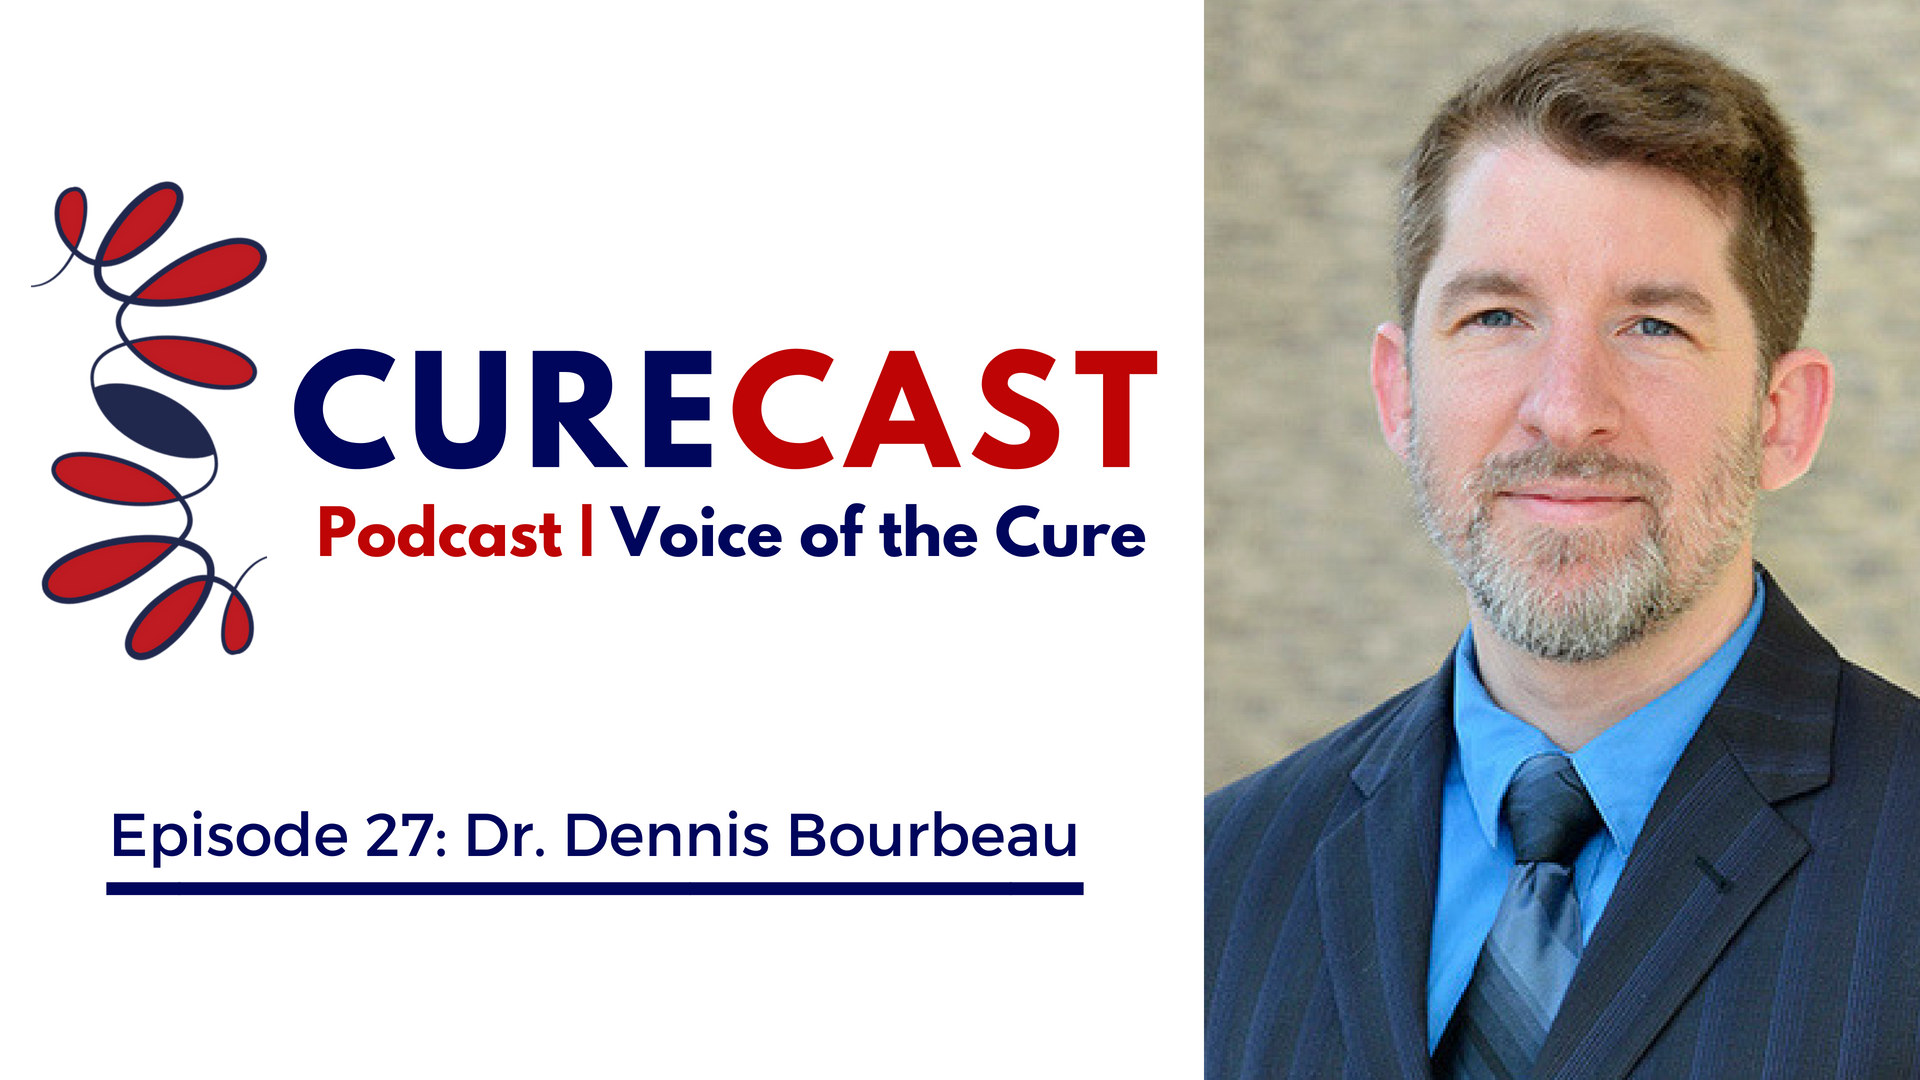 CureCast Interview with Dr. Dennis Bourbeau